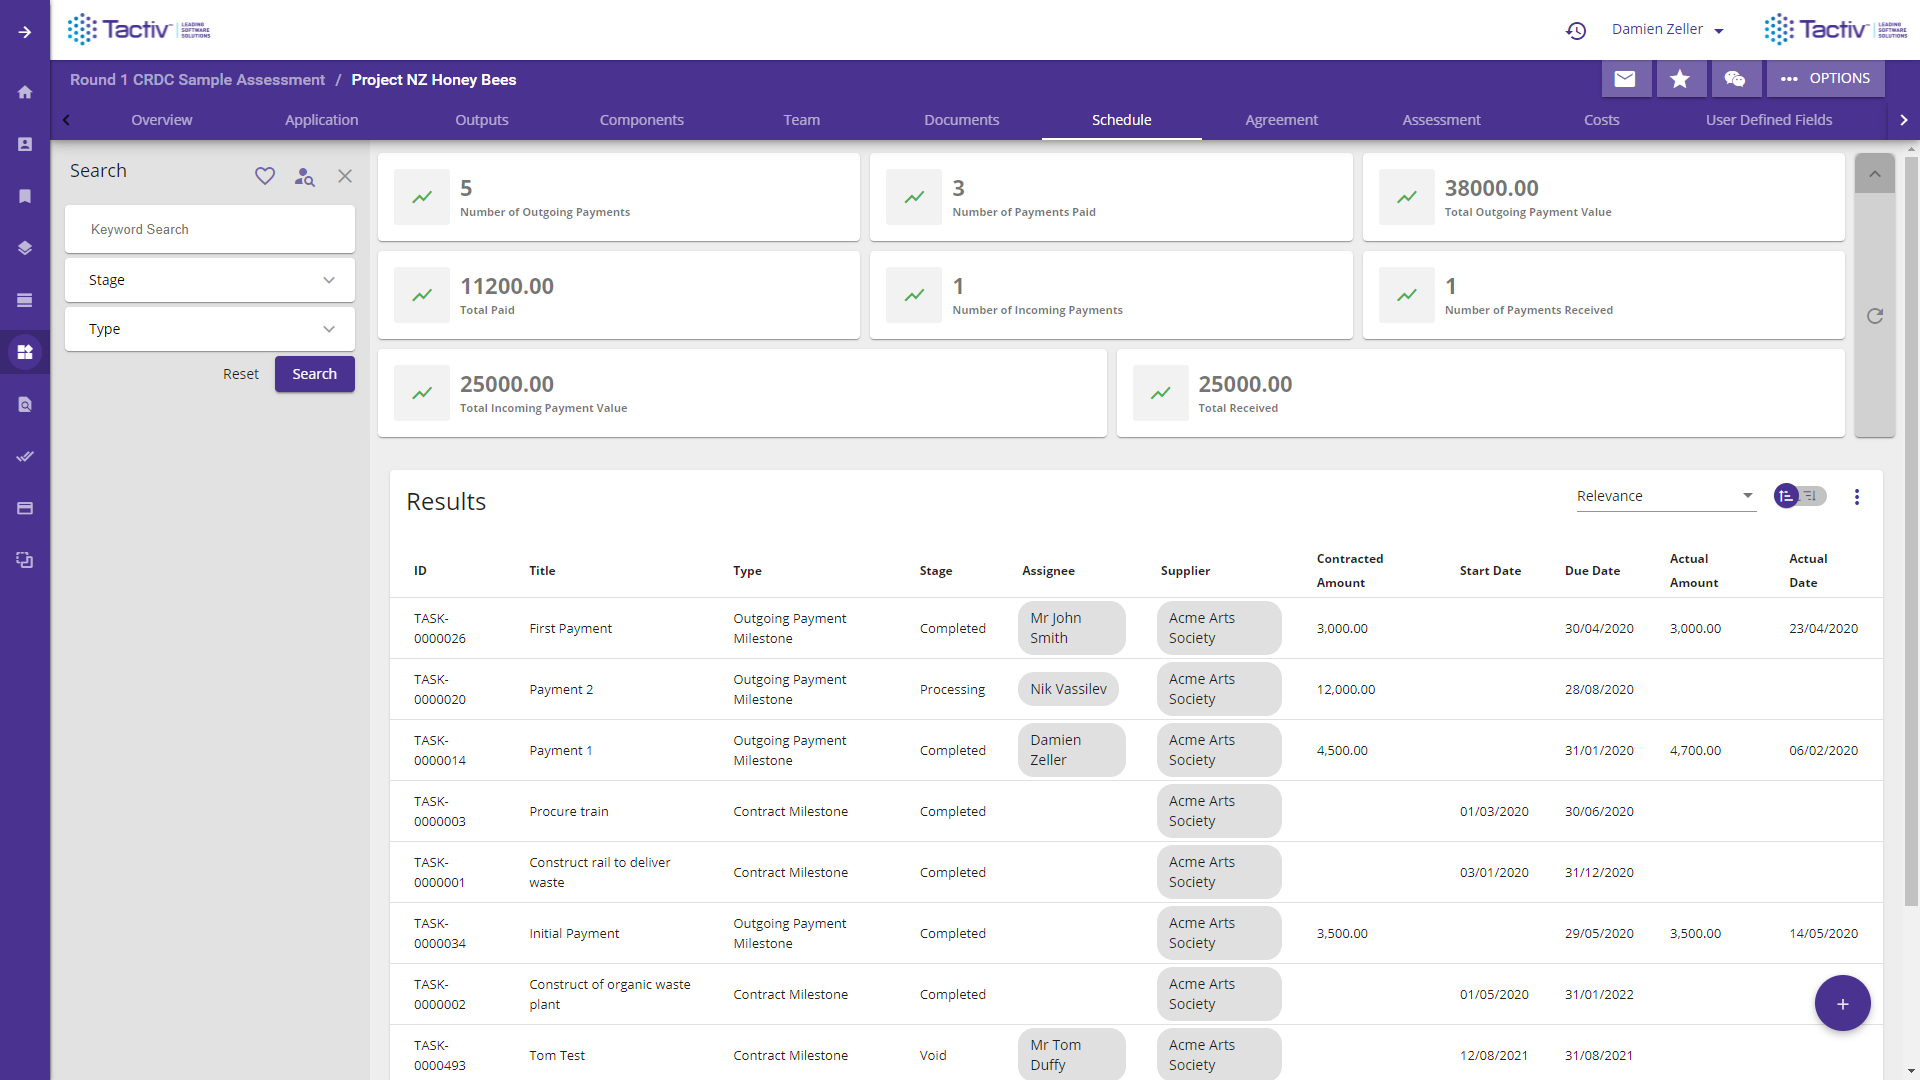 Enquire Software - Project schedule dashboards contain a wealth of information at a glance.